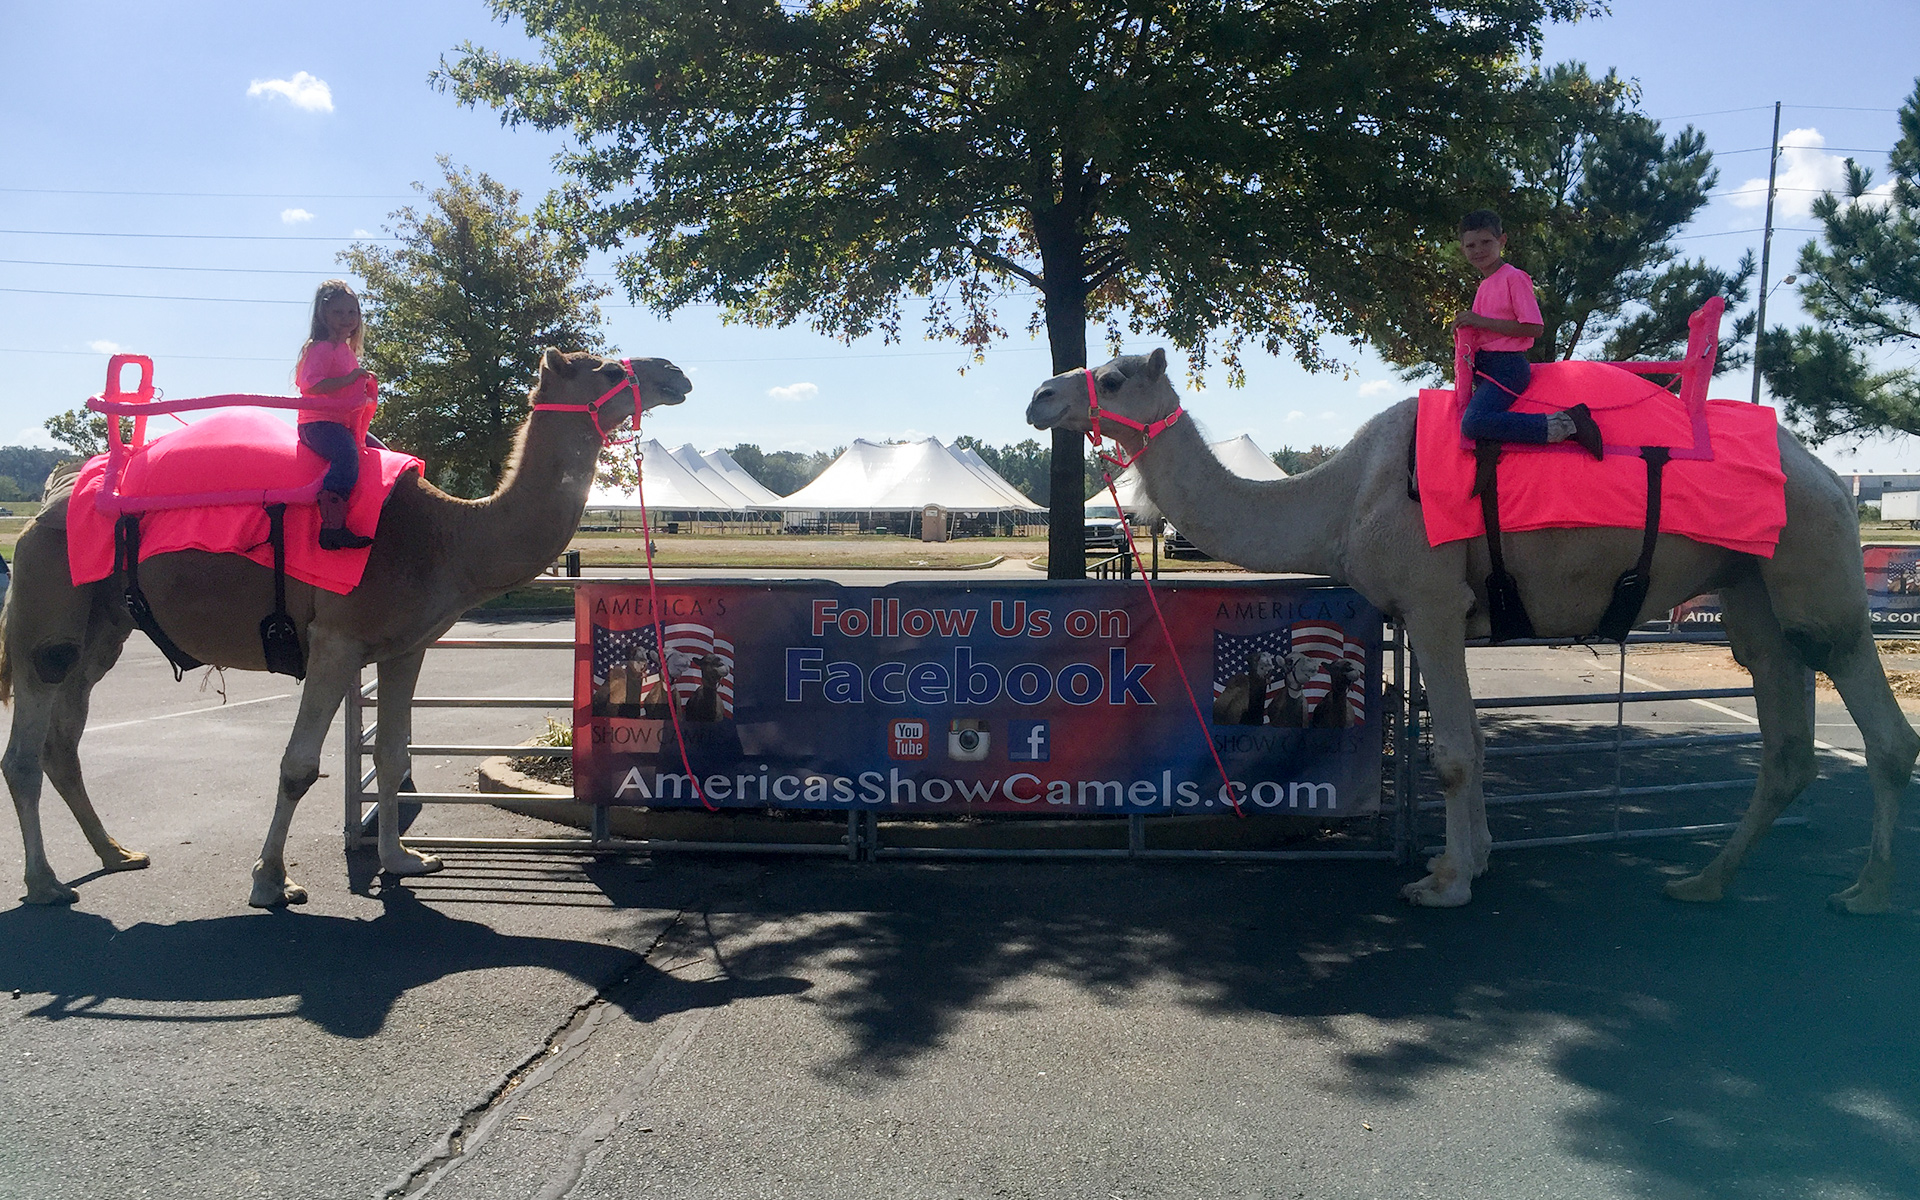 America's Show Camels is a company that show cases rare breeds of Dromedary camels across the U.S.